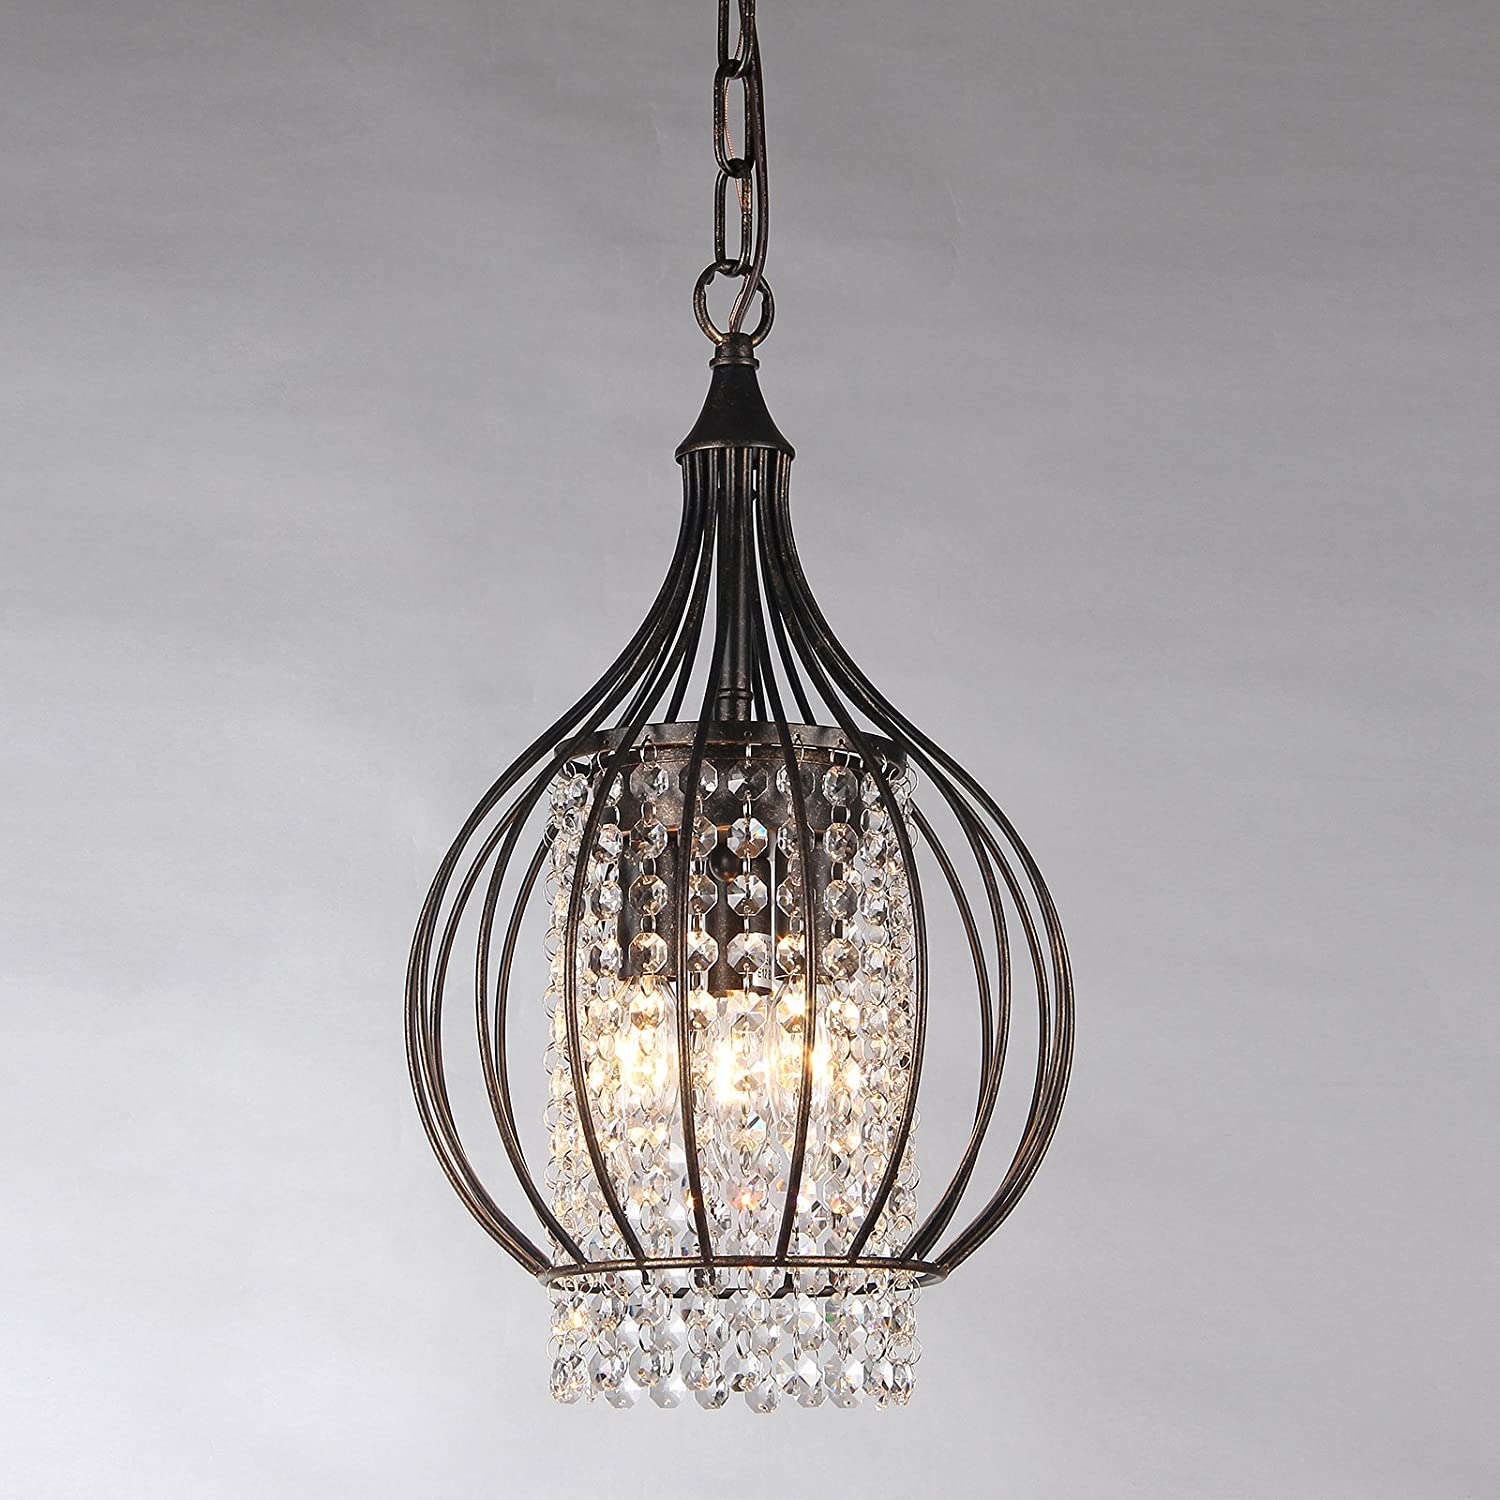 pendant ceiling hot shade fixture ebay lamp itm light chandelier lighting drum crystal